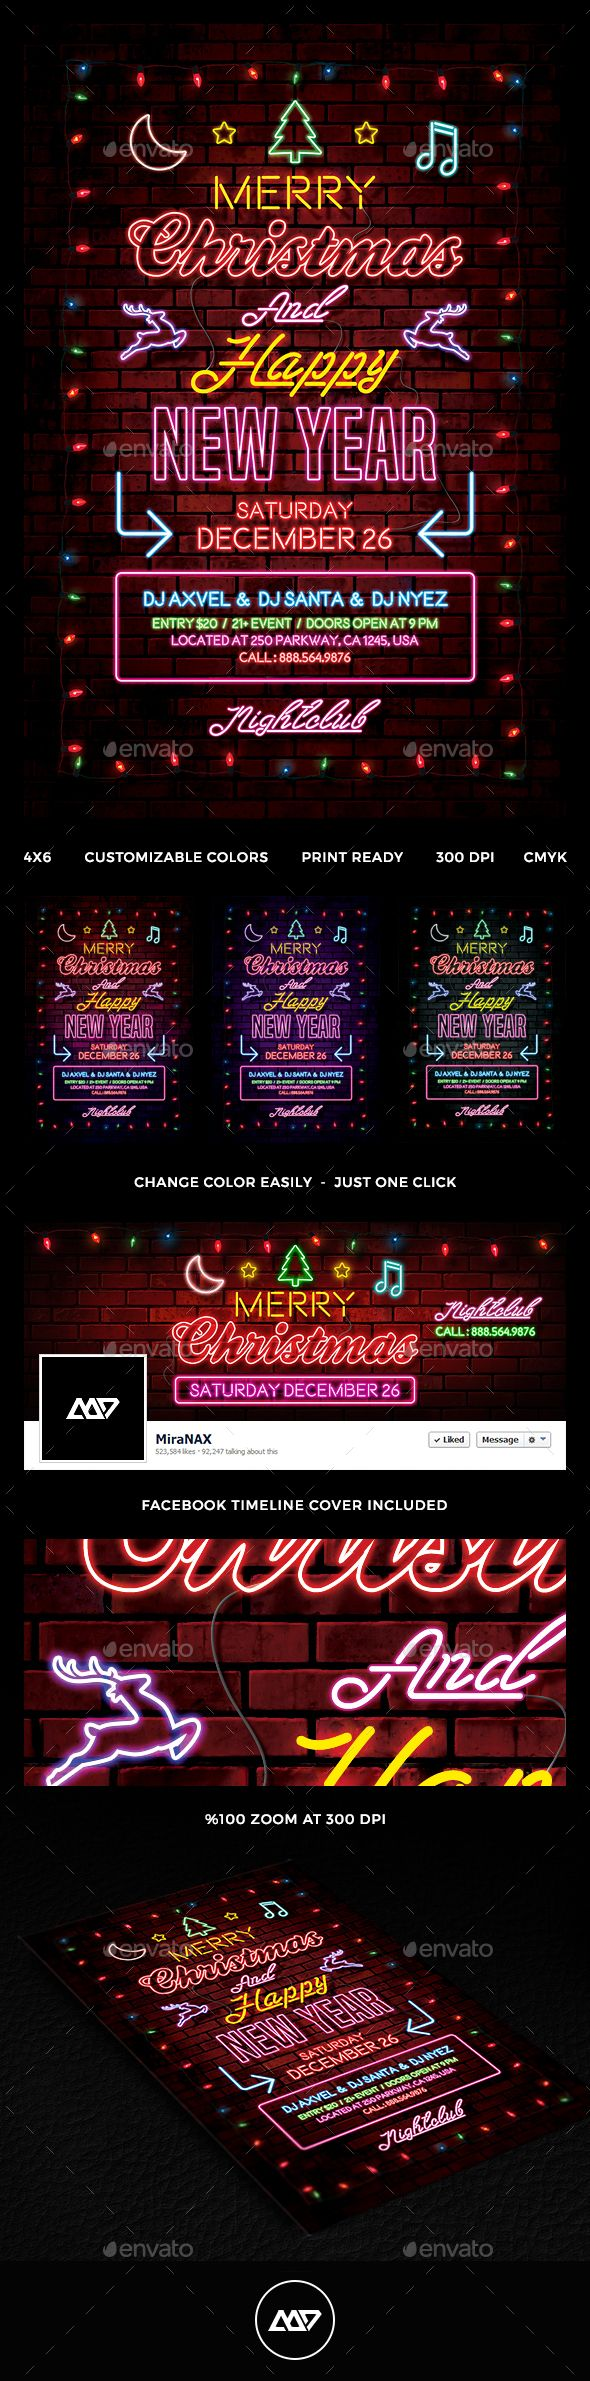 Christmas Flyer — Photoshop PSD #glow #nye • Available here → https://graphicriver.net/item/christmas-flyer/13956862?ref=pxcr